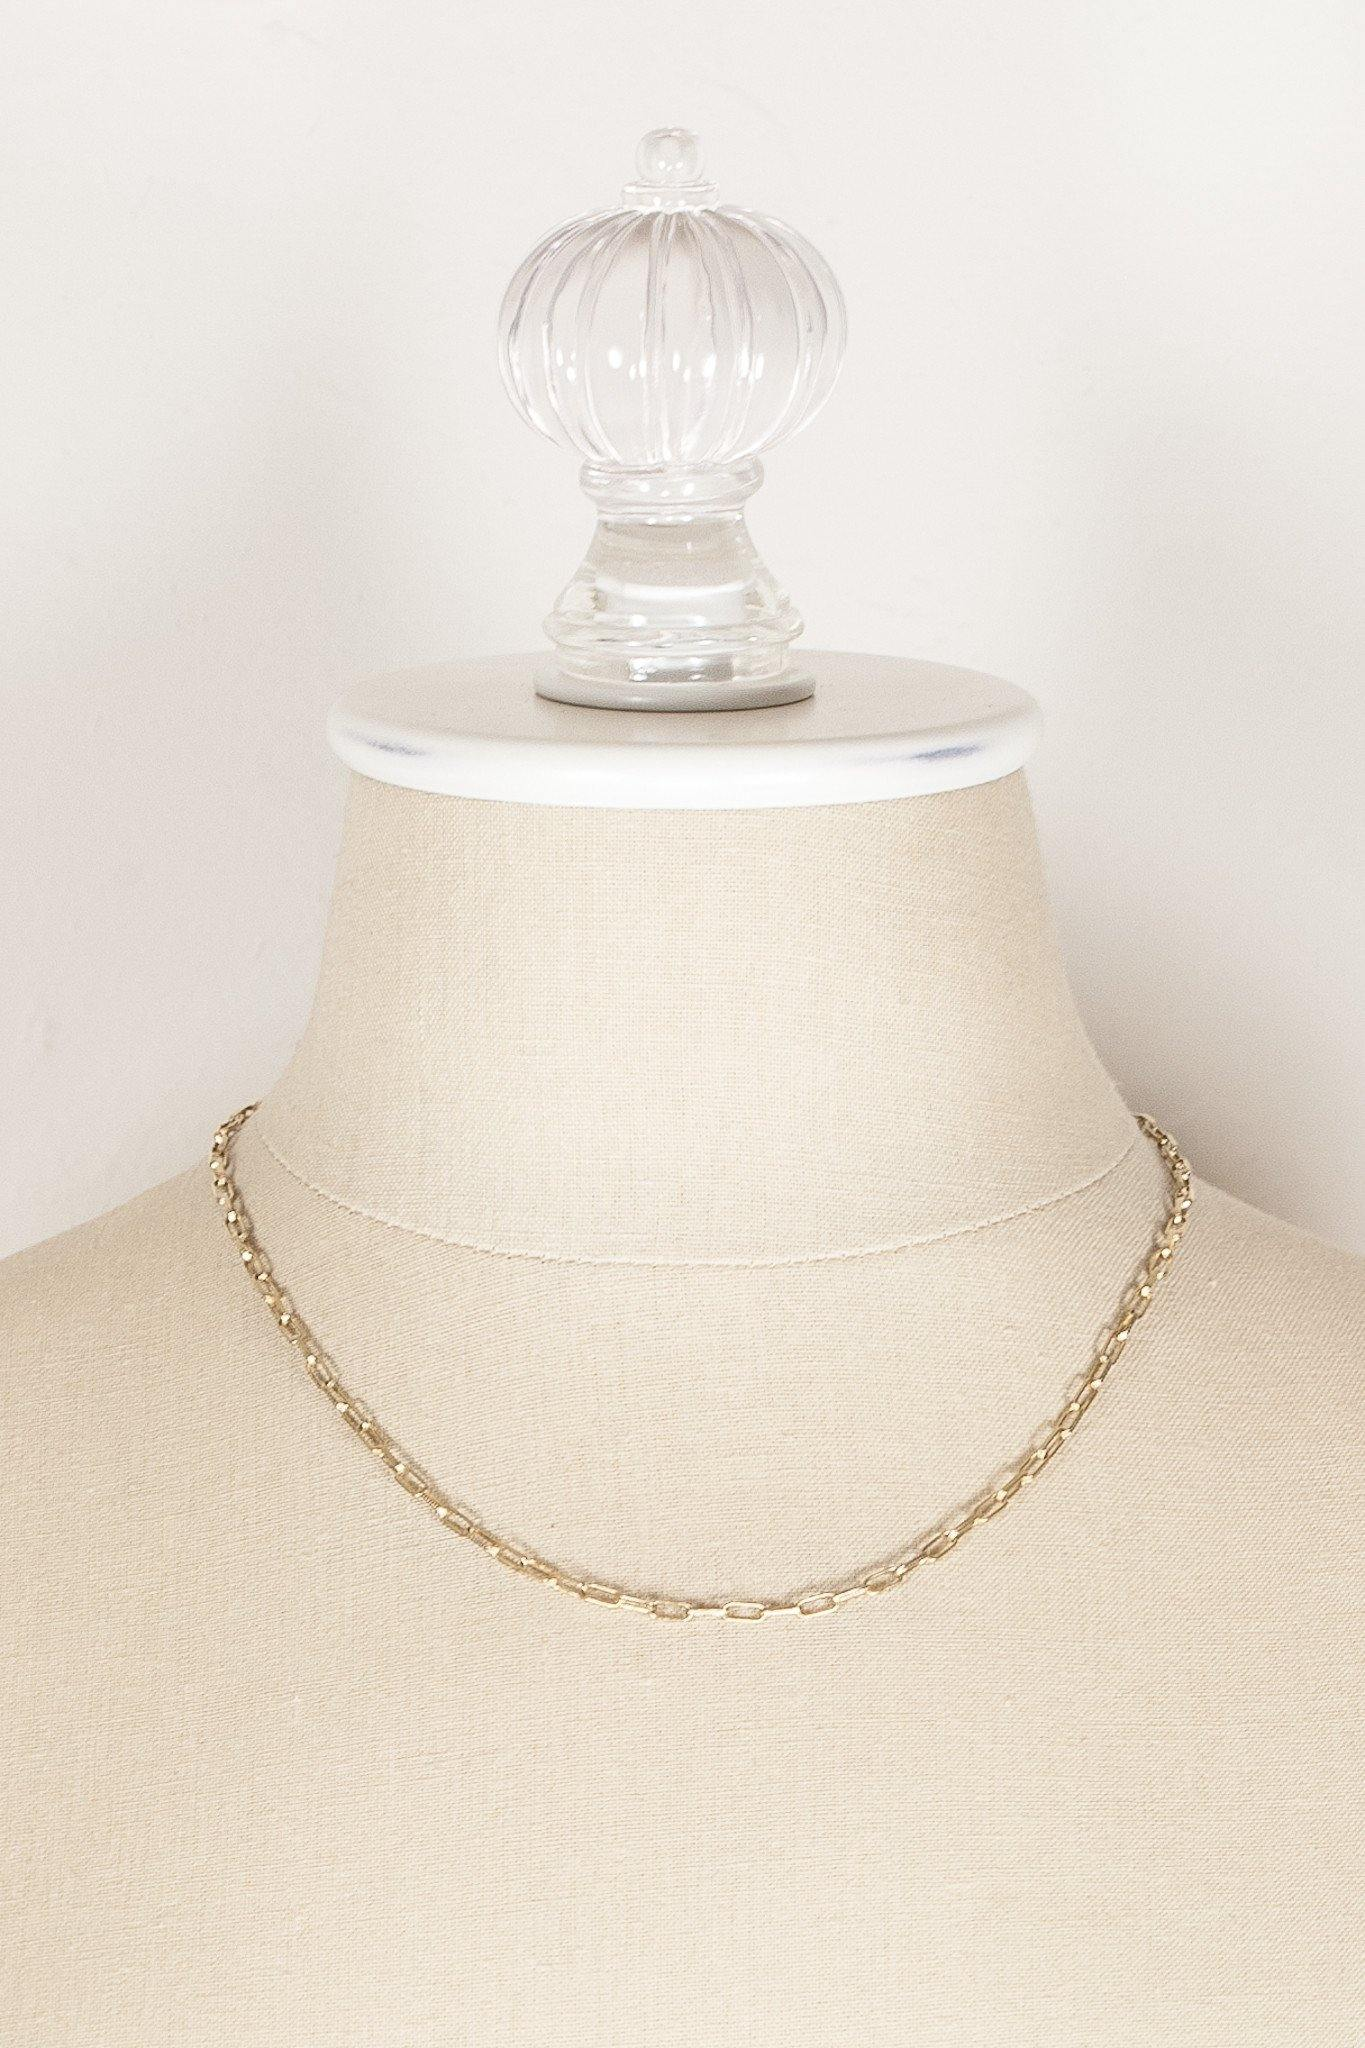 50's__Accessocraft__Classic Chain Necklace